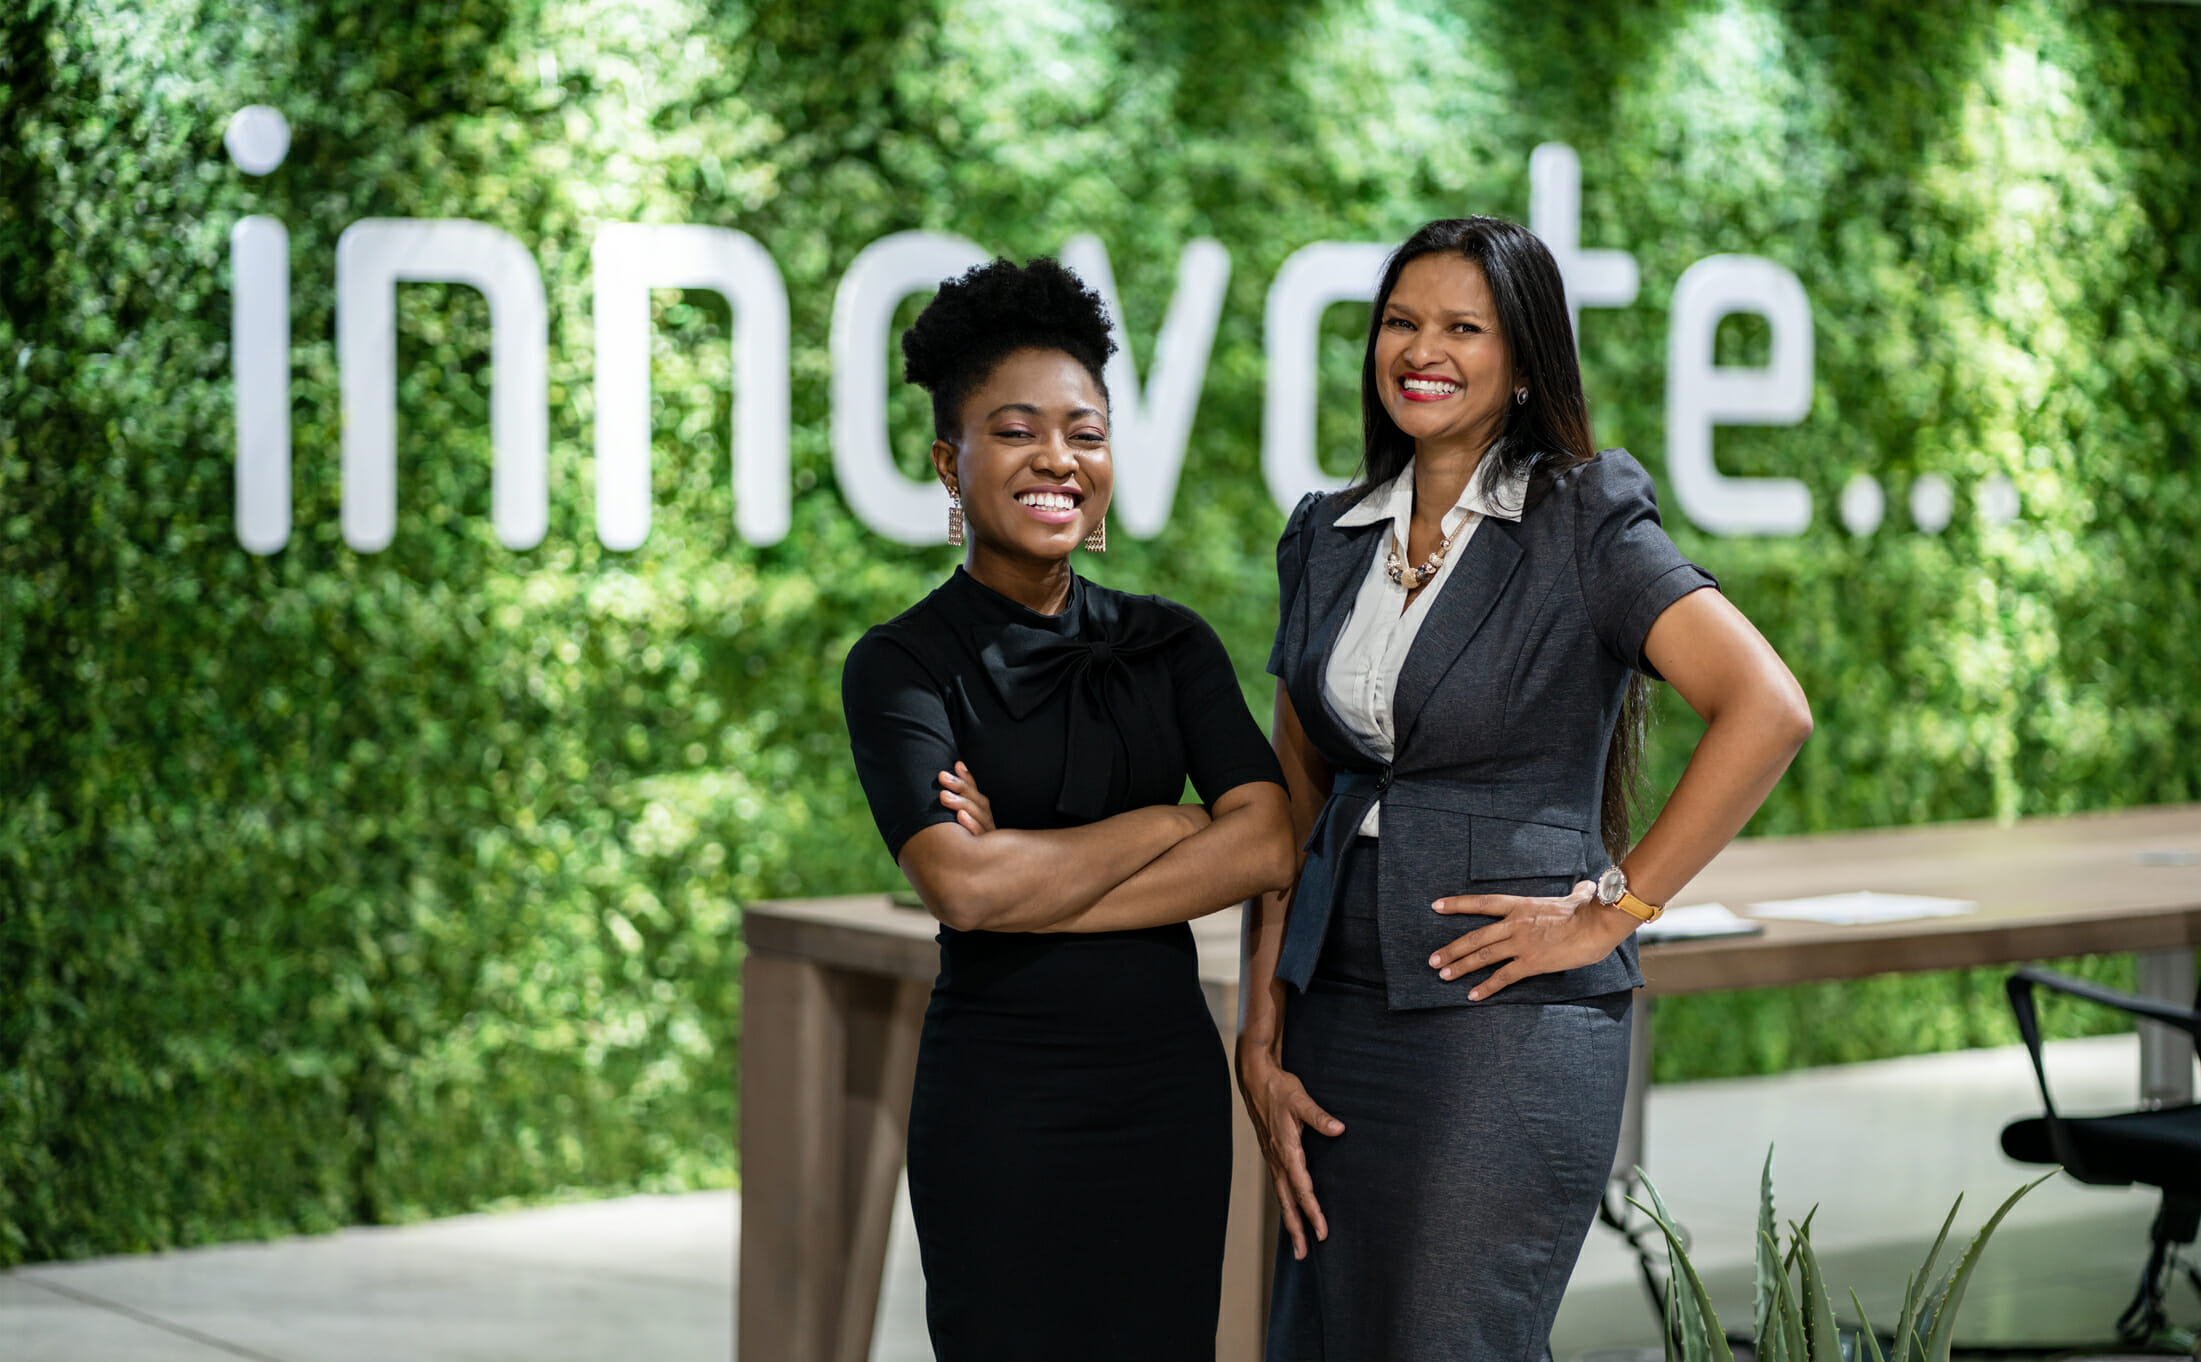 Portrait of a diverse young African business woman smiling while standing together in an eco-friendly modern office space